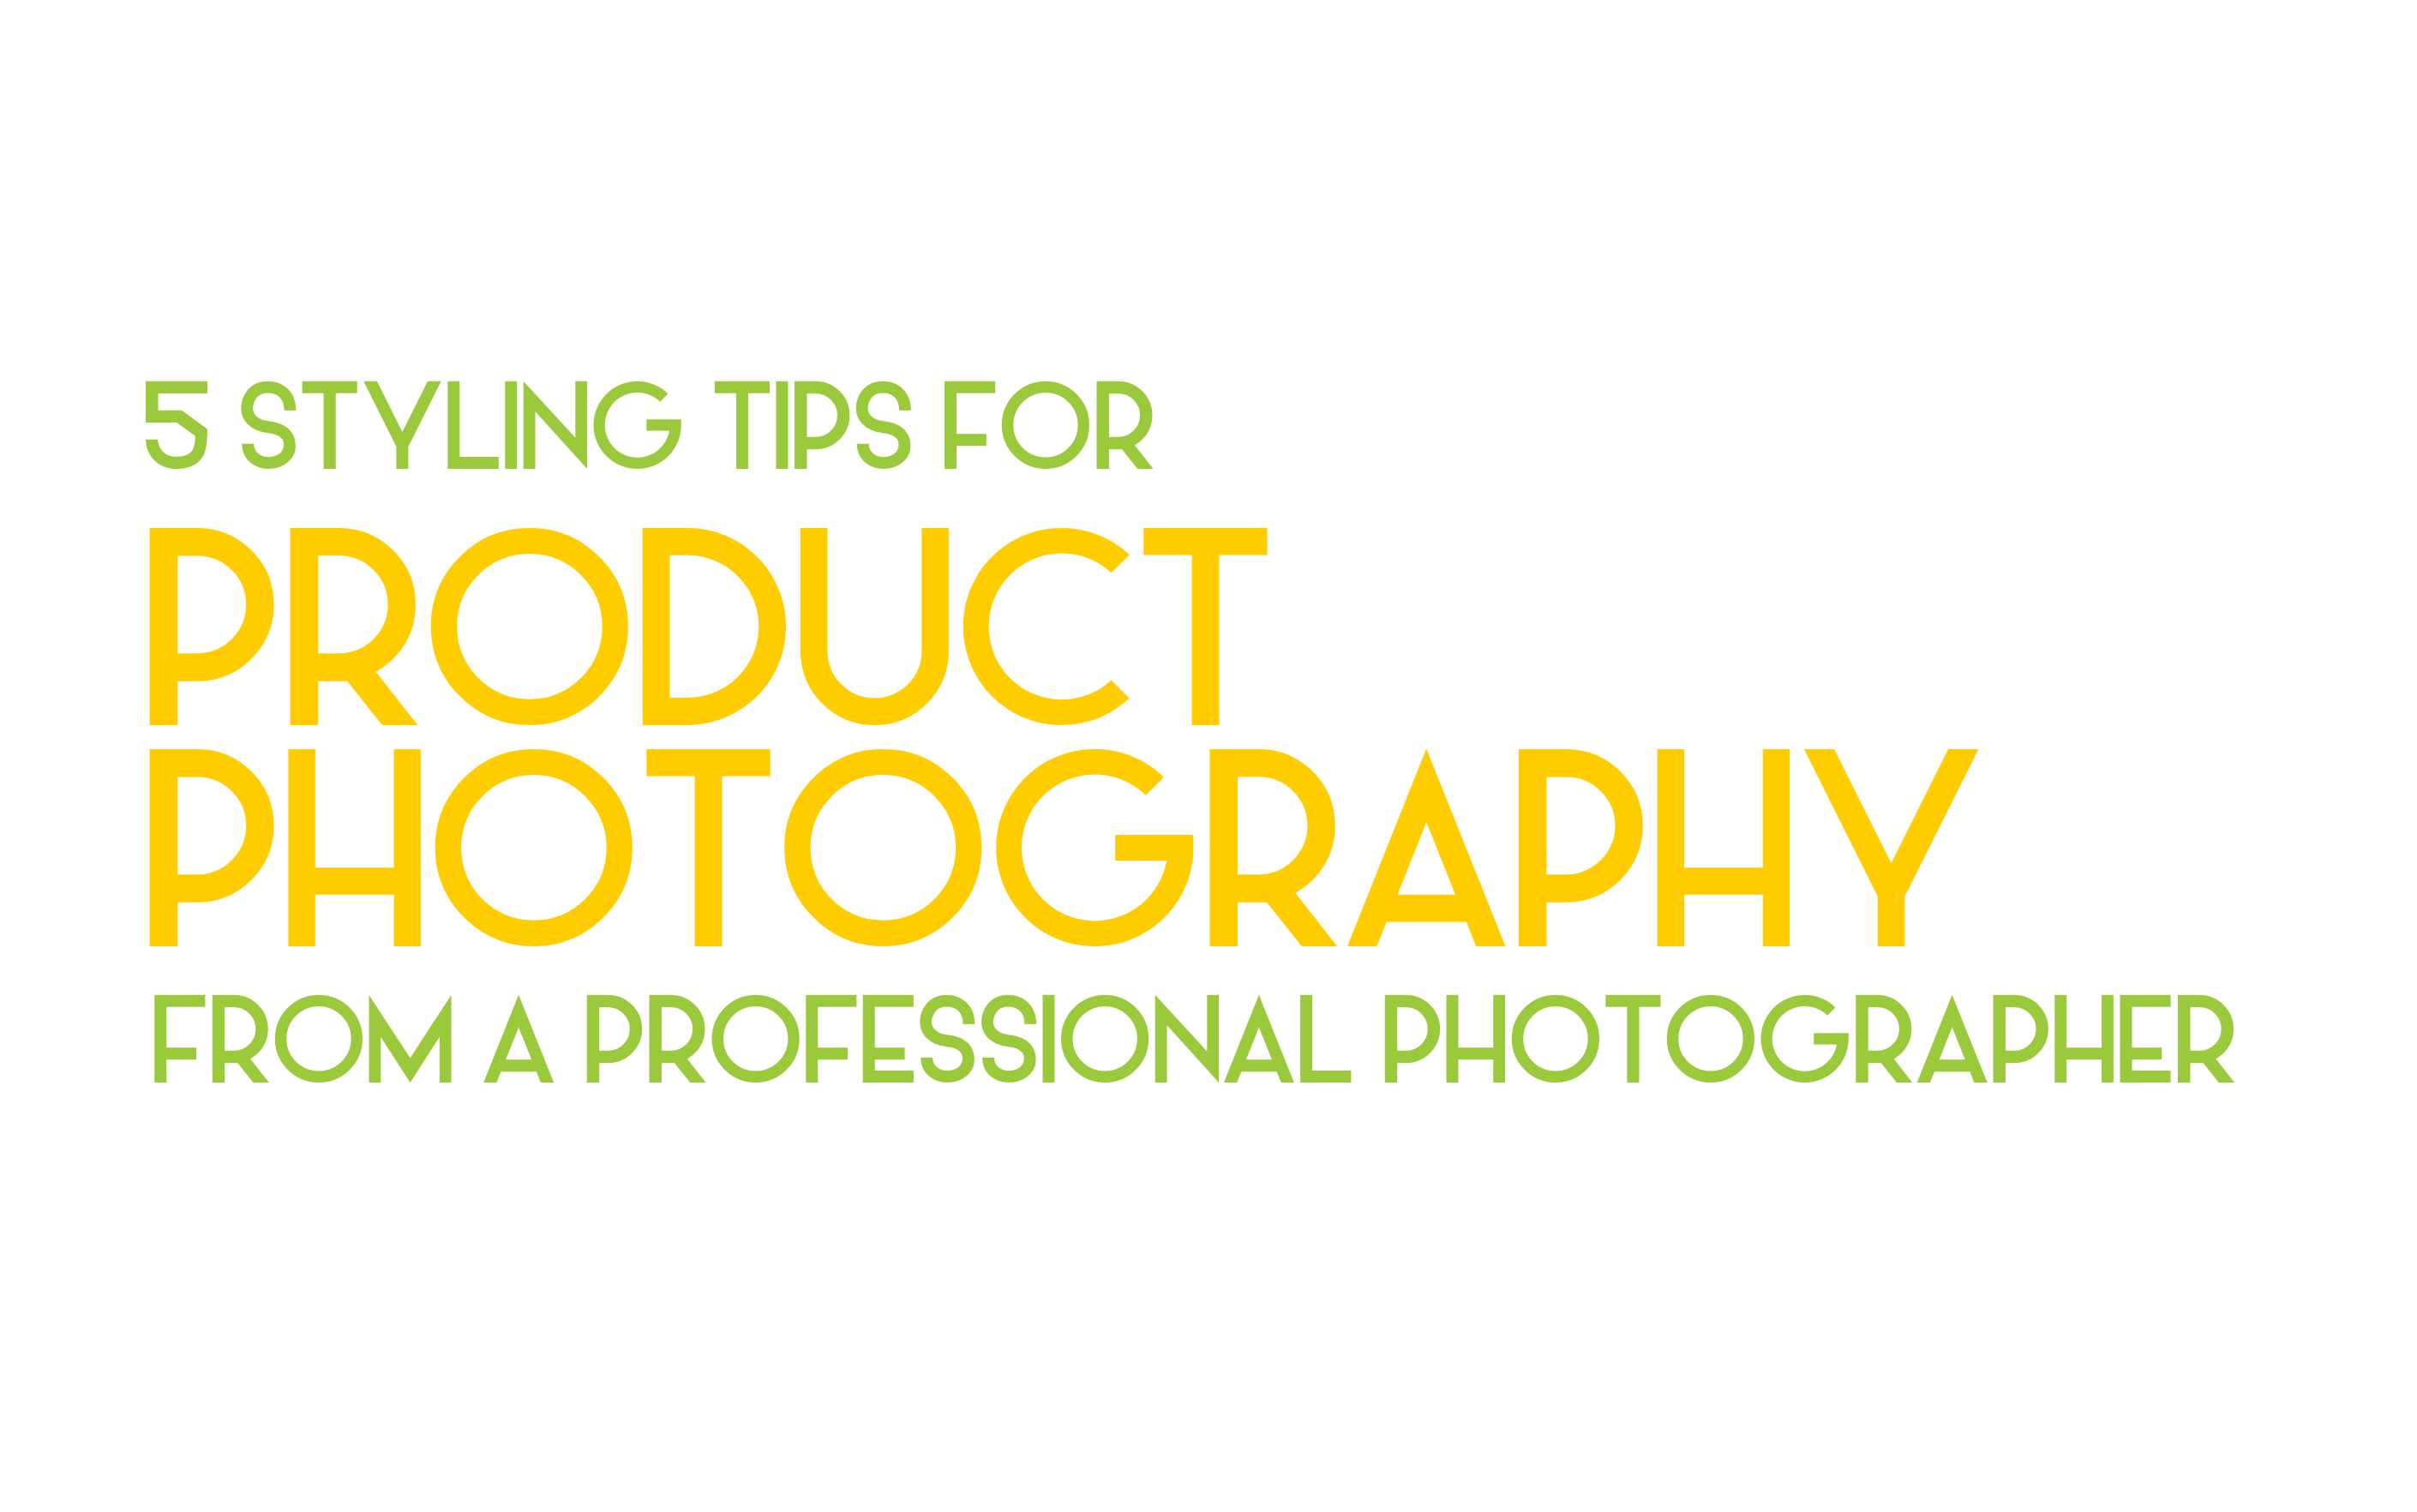 5 pro tips to styling product photography